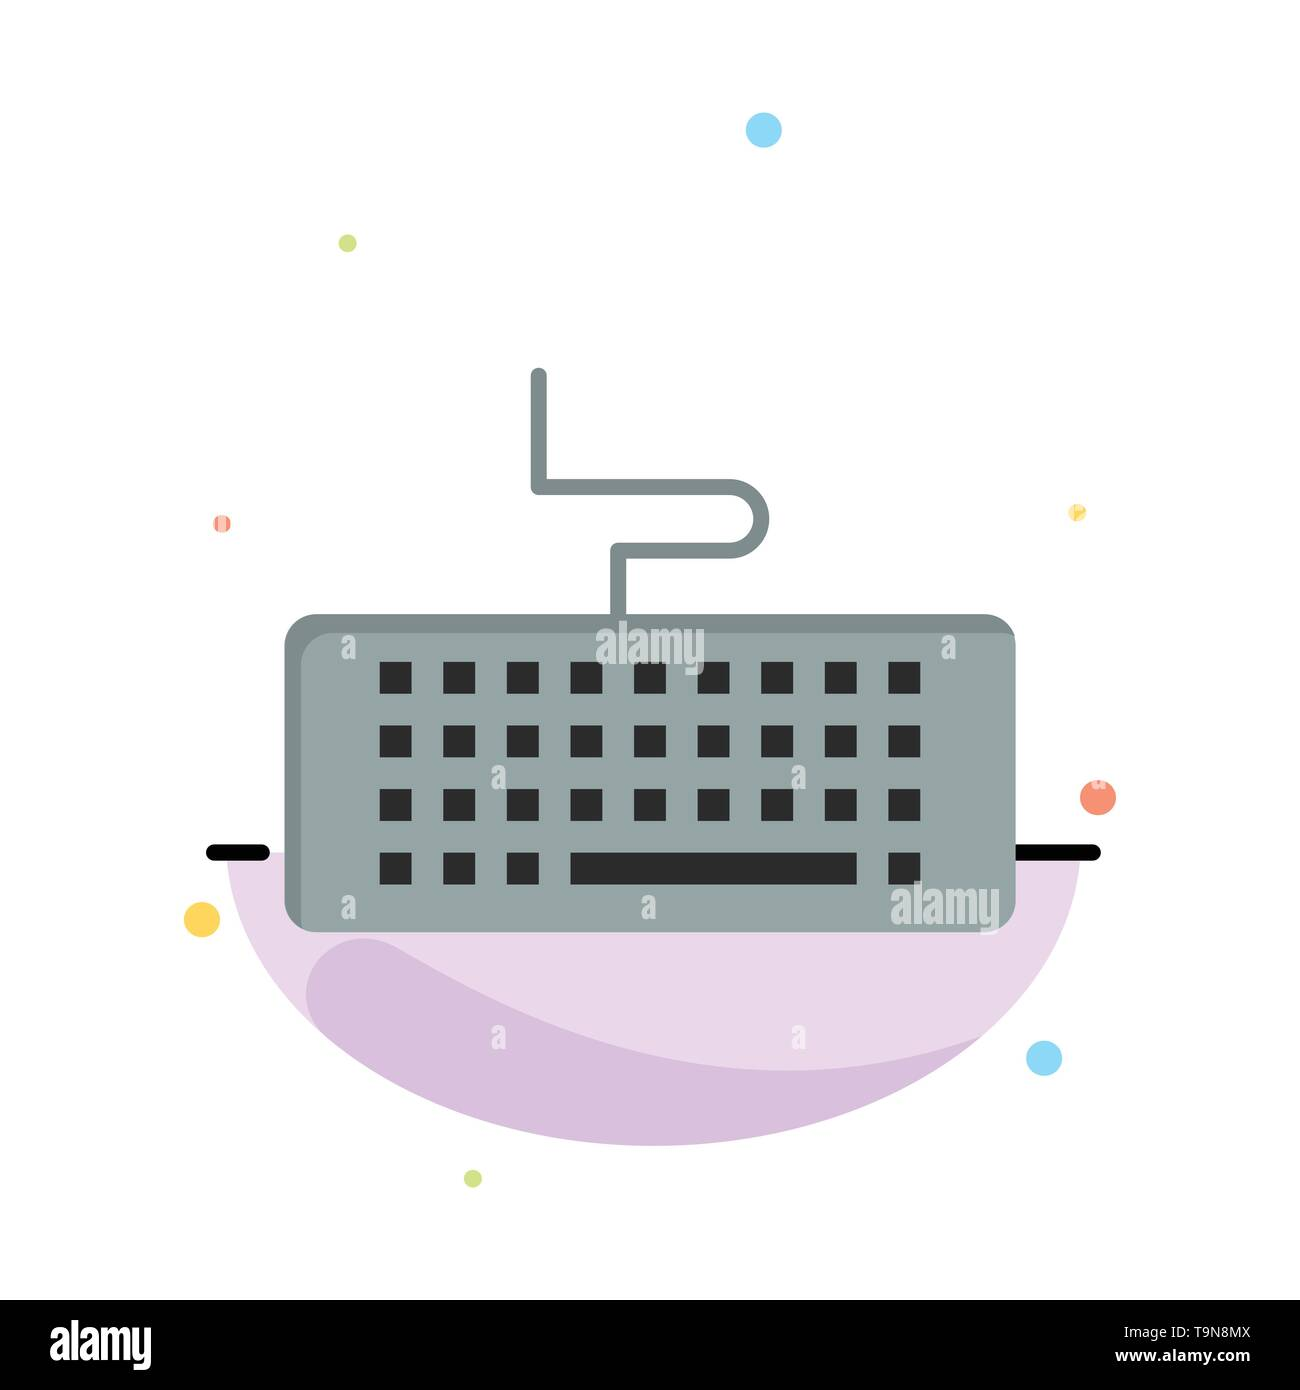 Key, Keyboard, Hardware, Education Abstract Flat Color Icon Template - Stock Image